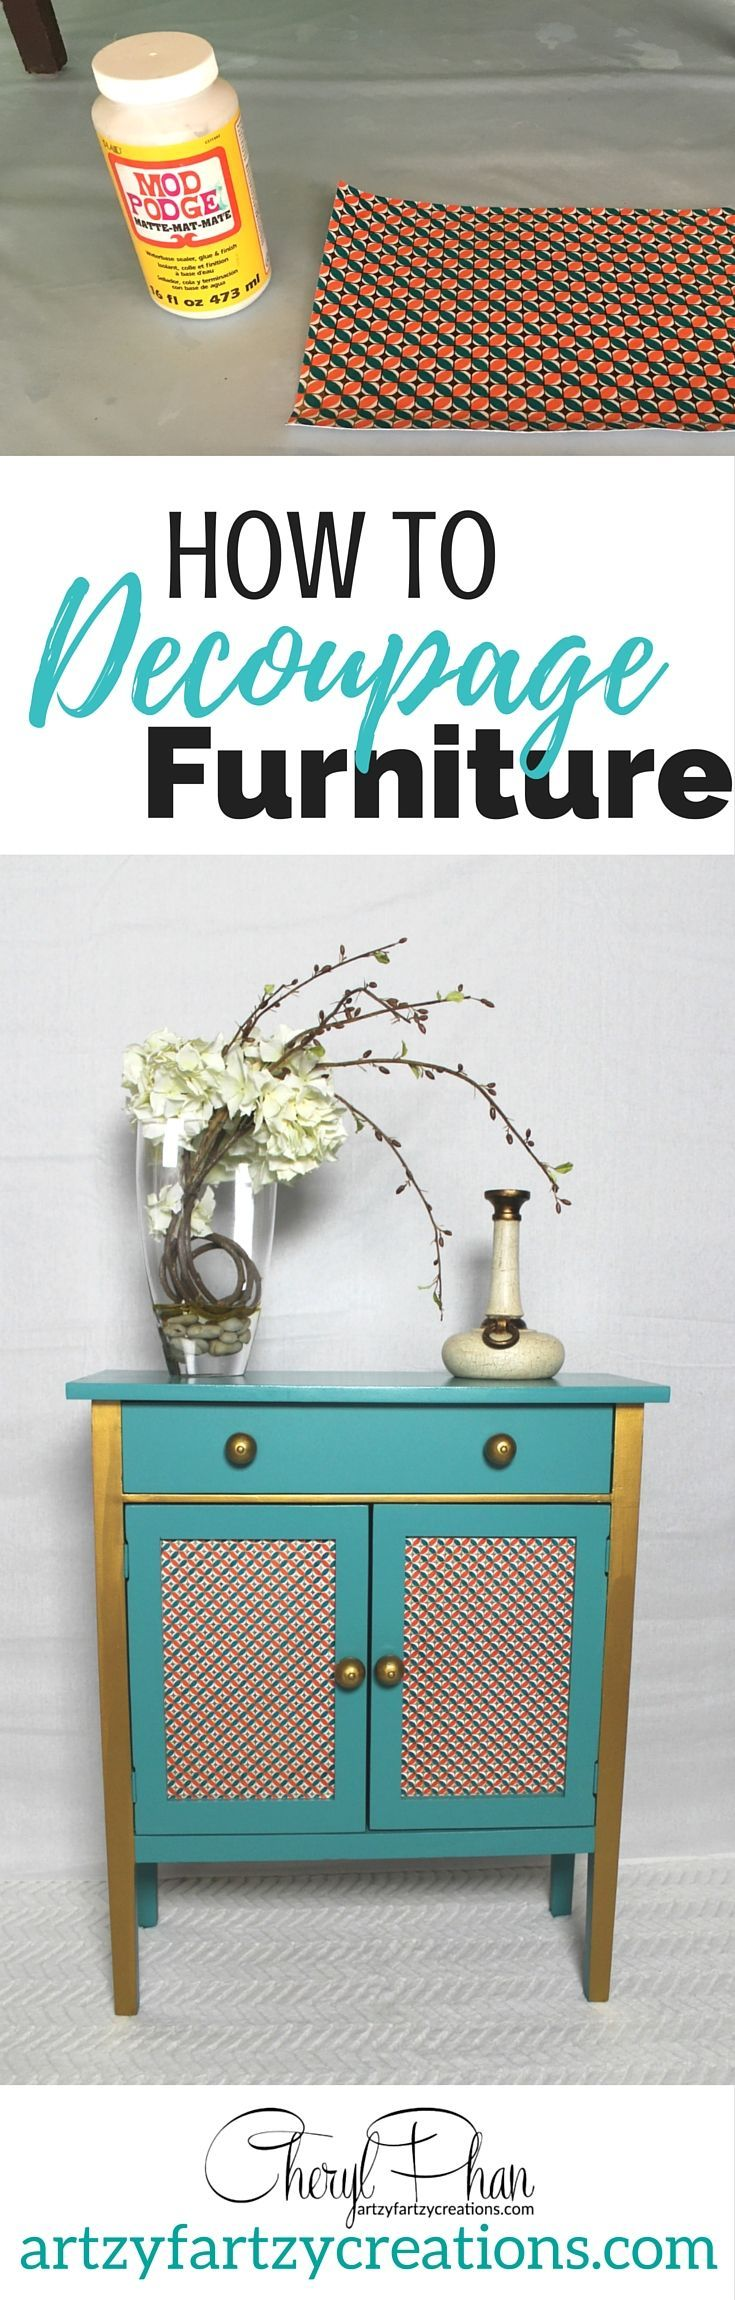 how to decoupage furniture. this easy tutorial shows each step to ... - Decoupage En Muebles Tutorial